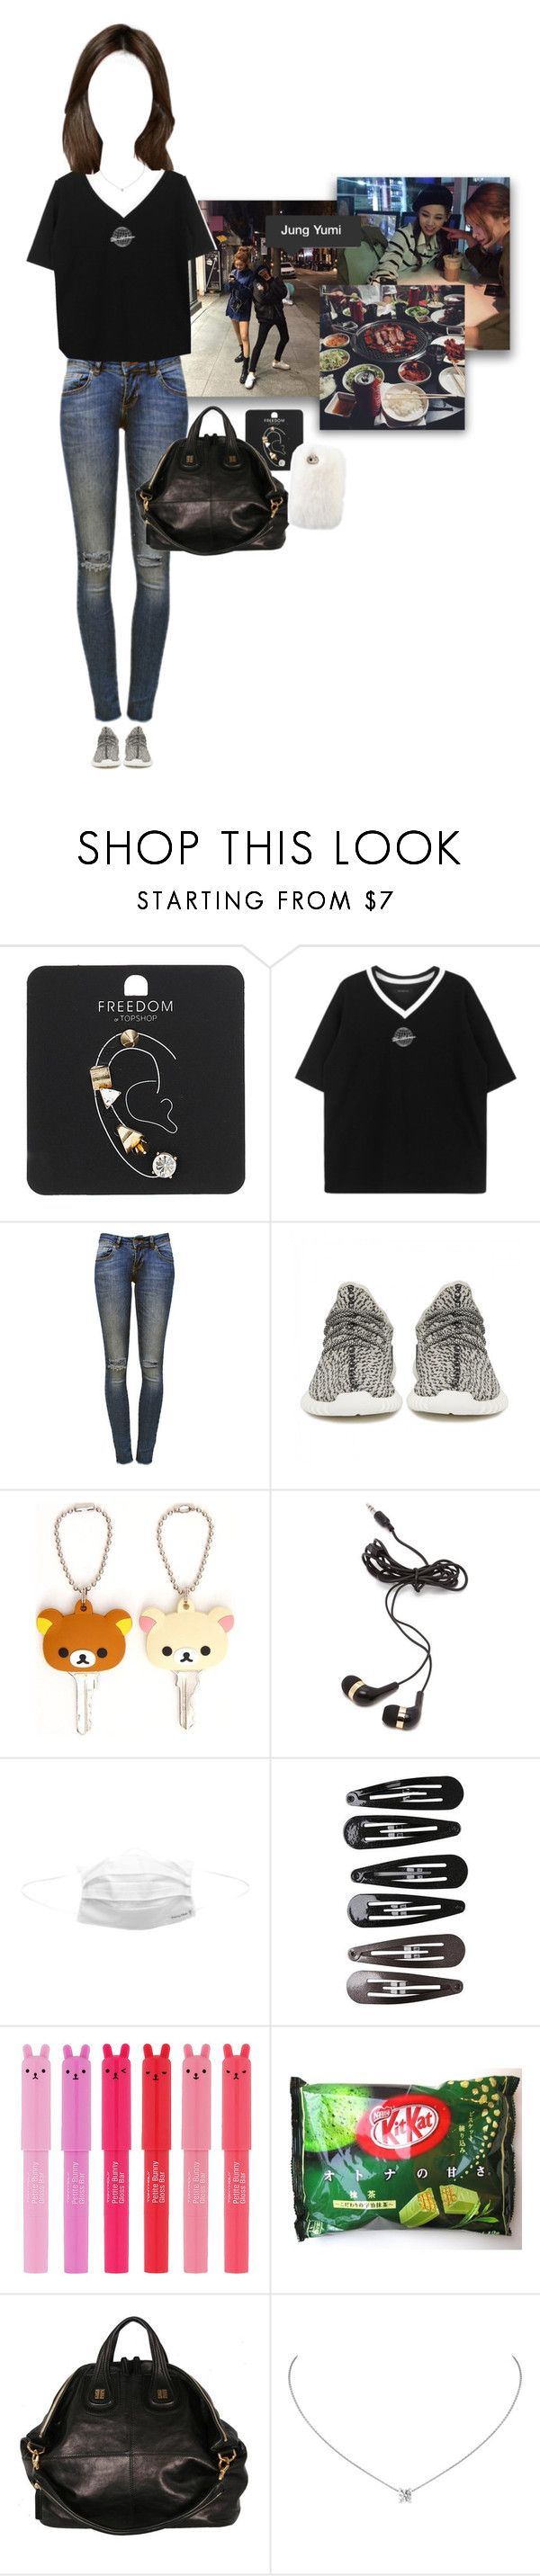 """hanui : going out to eat with Yumi-unnie (2014)"" by rjkpcy ❤ liked on Polyvore featuring Topshop, Anine Bing, adidas Originals, Forever 21, Clips, TONYMOLY and hanui"